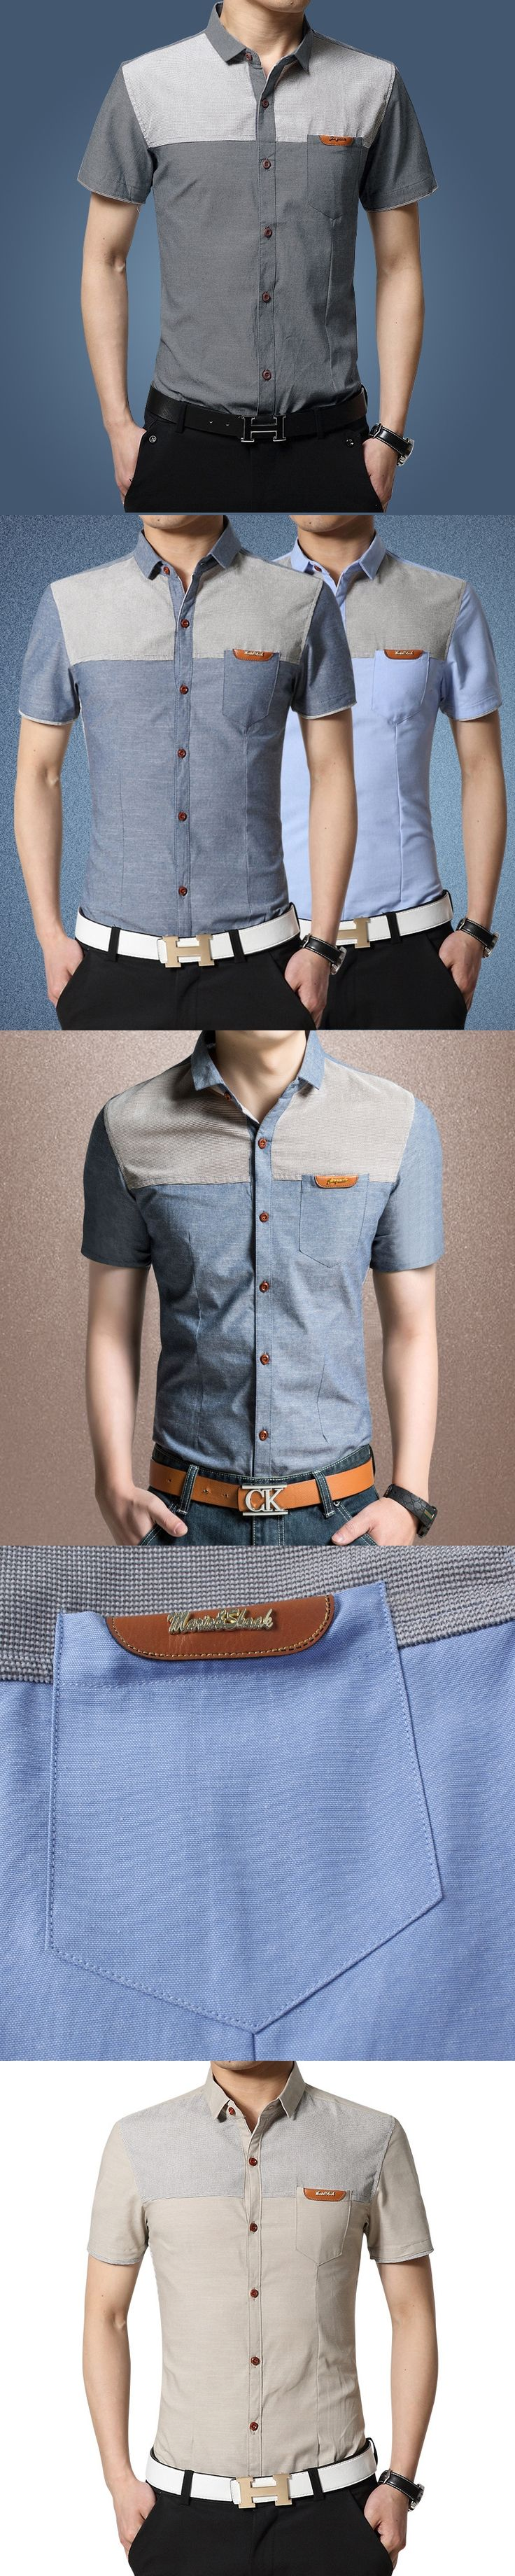 Short sleeved shirt men's fashion casual Summer Youth slim coat gown half sleeve shirt